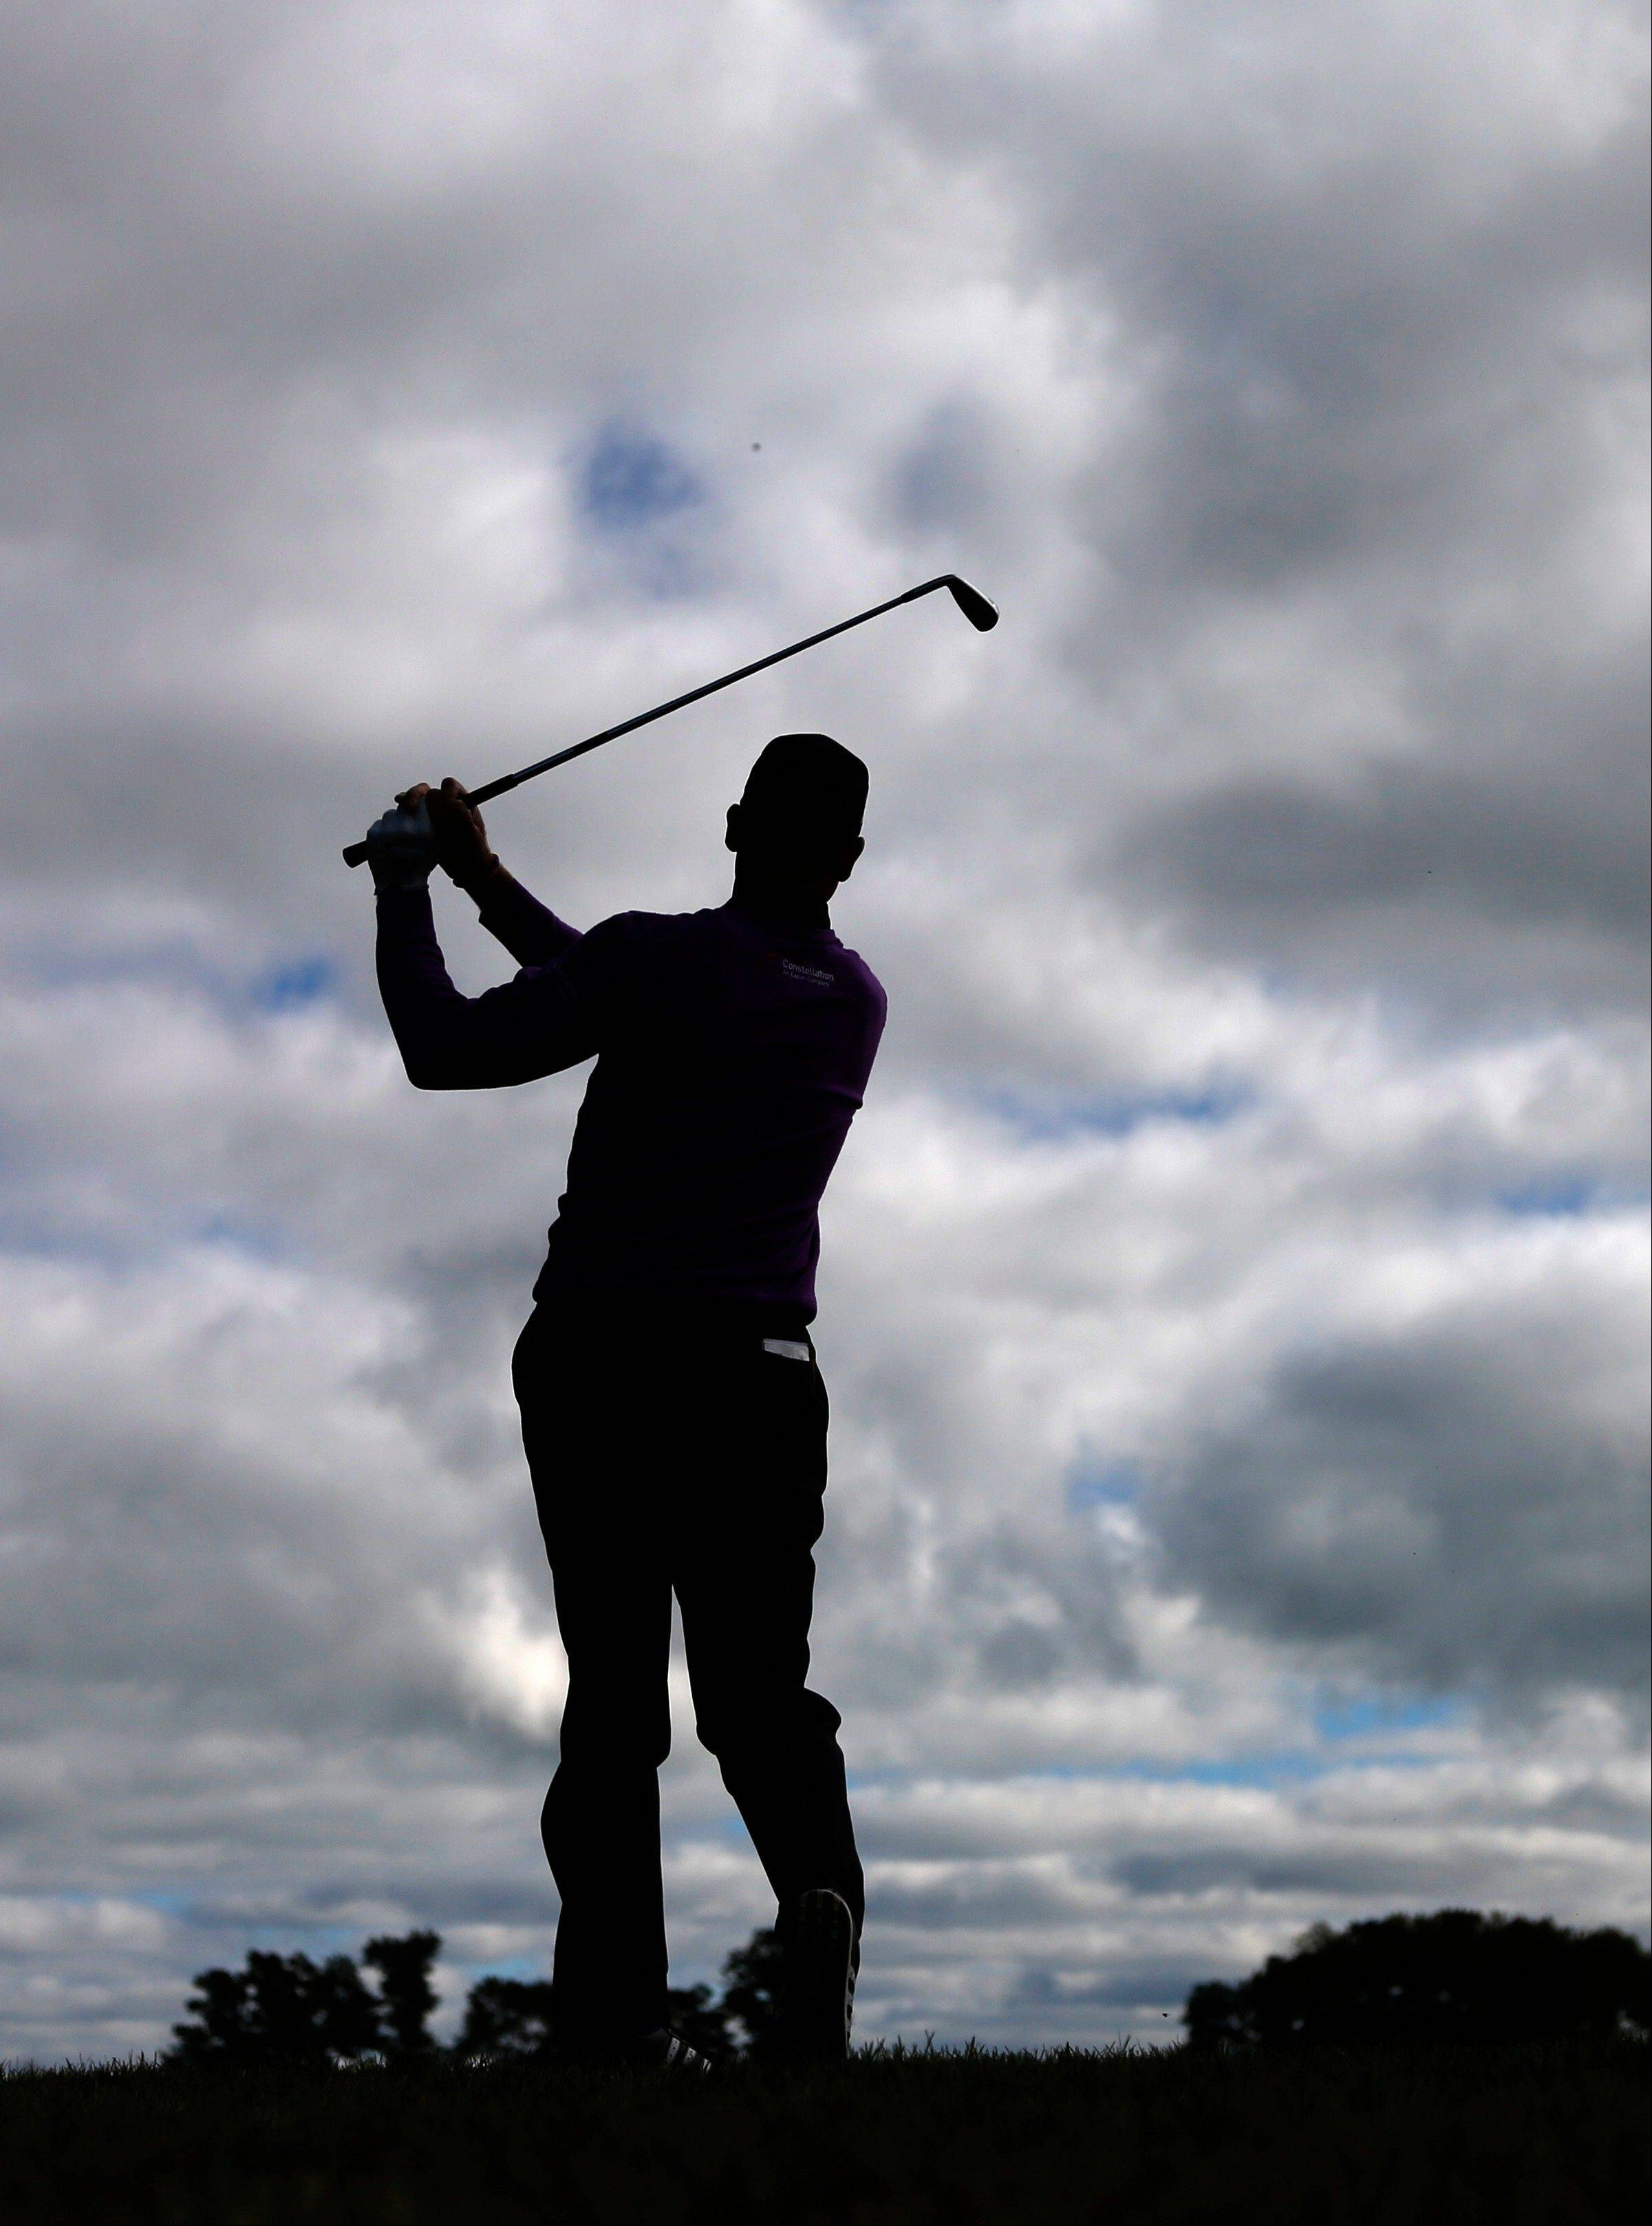 Jim Furyk is silhouetted after hitting his approach shot on the third fairway during the final round of the BMW Championship golf tournament at Conway Farms Golf Club Monday. Furyk had the lead entering the final round but finished in third place.